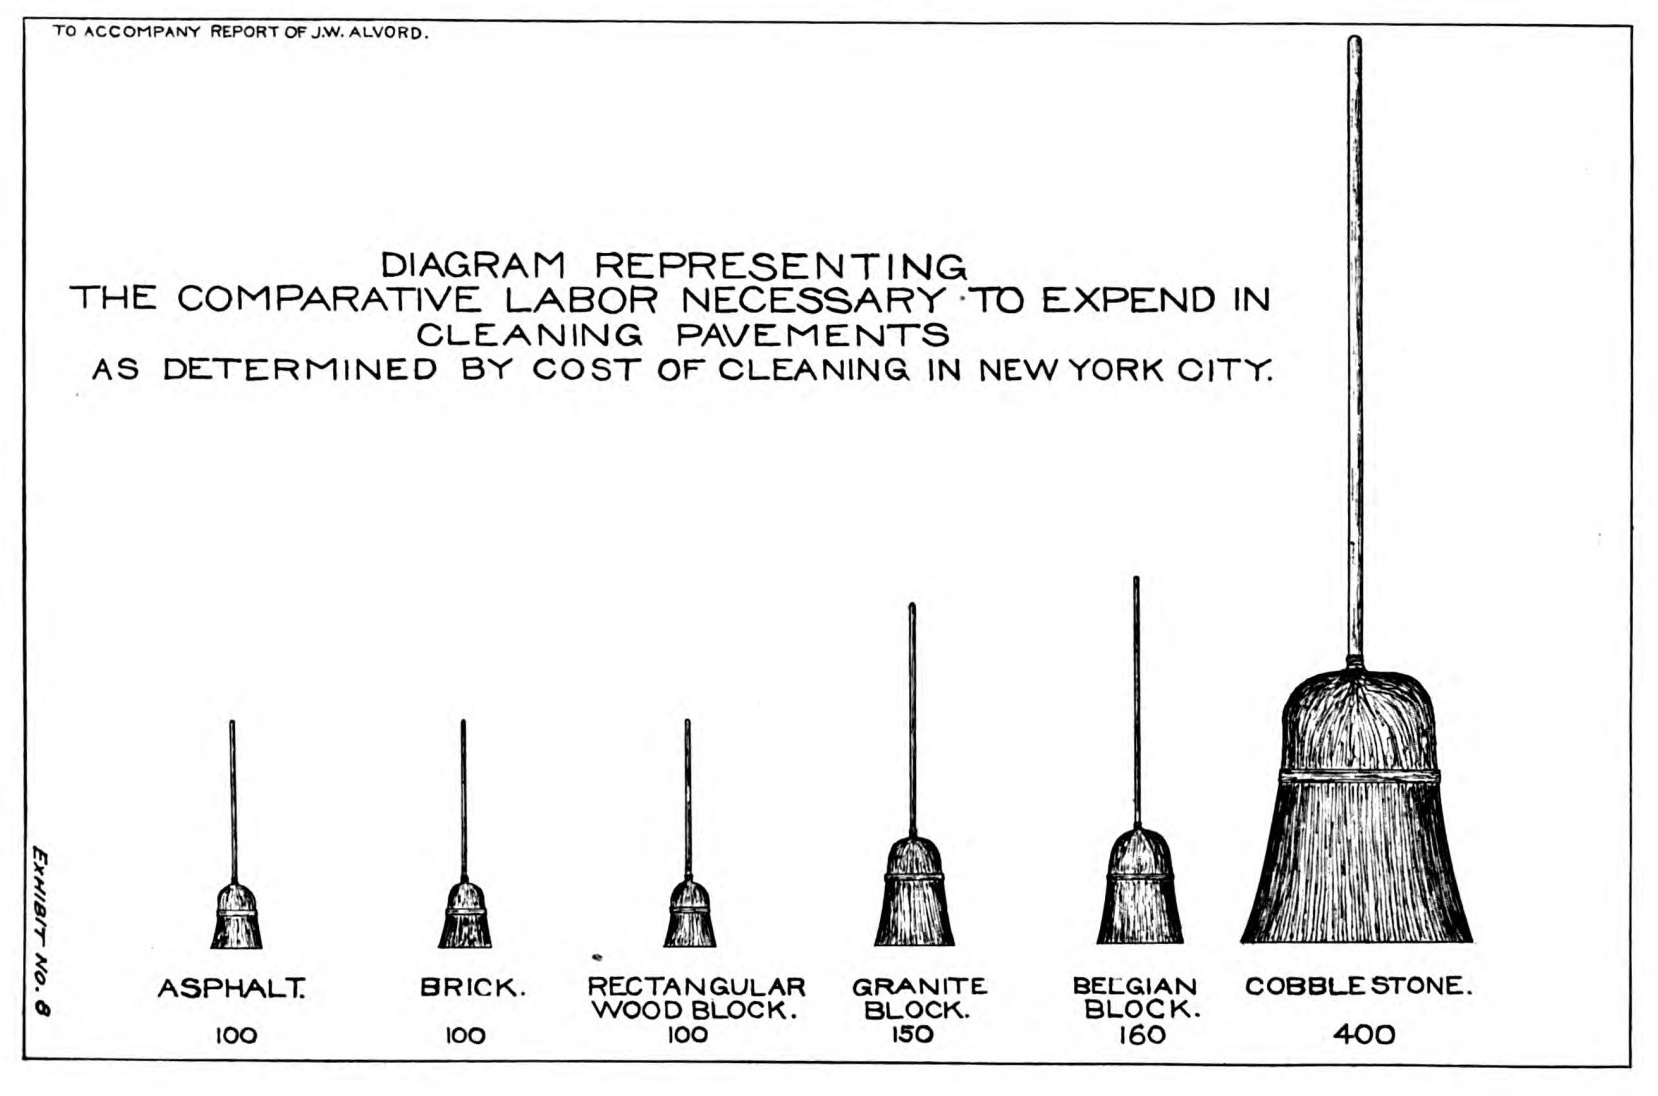 Diagram showing relative labor involved in cleaning different types of street pavement in New York. Source: John W. Alvord, 'A Report to the Street Paving Committee of the Commercial Club on The Street Paving Problem of Chicago' [Chicago: R. R. Donnelley & Sons Company, Printers, 1904], exhibit no. 8).